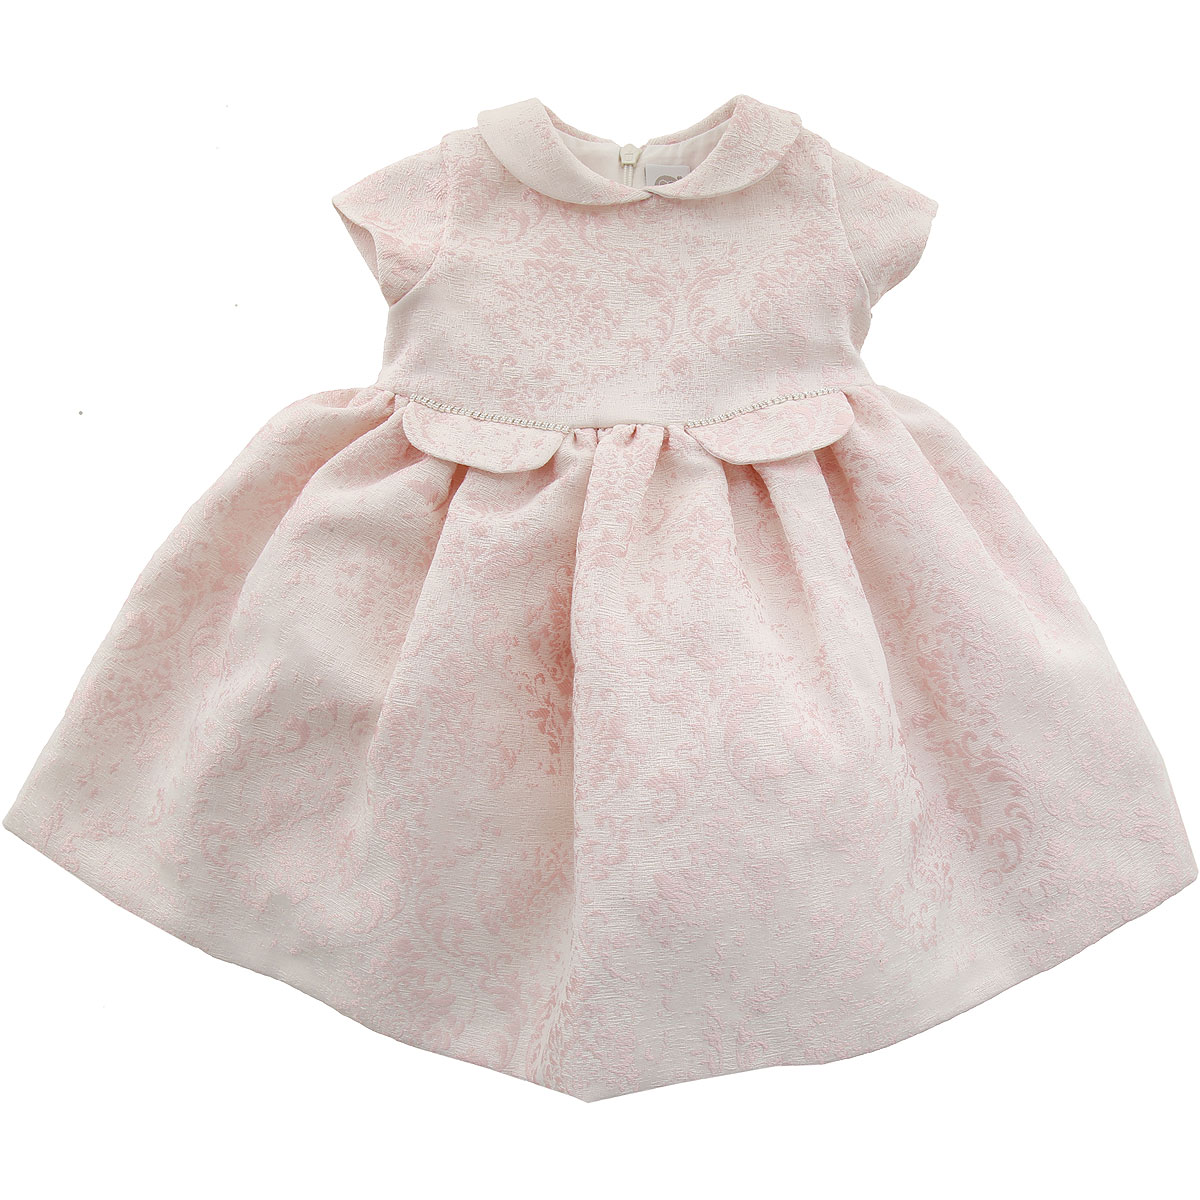 Marlu Baby Dress for Girls On Sale, Pink, polyester, 2019, 12M 18M 9M